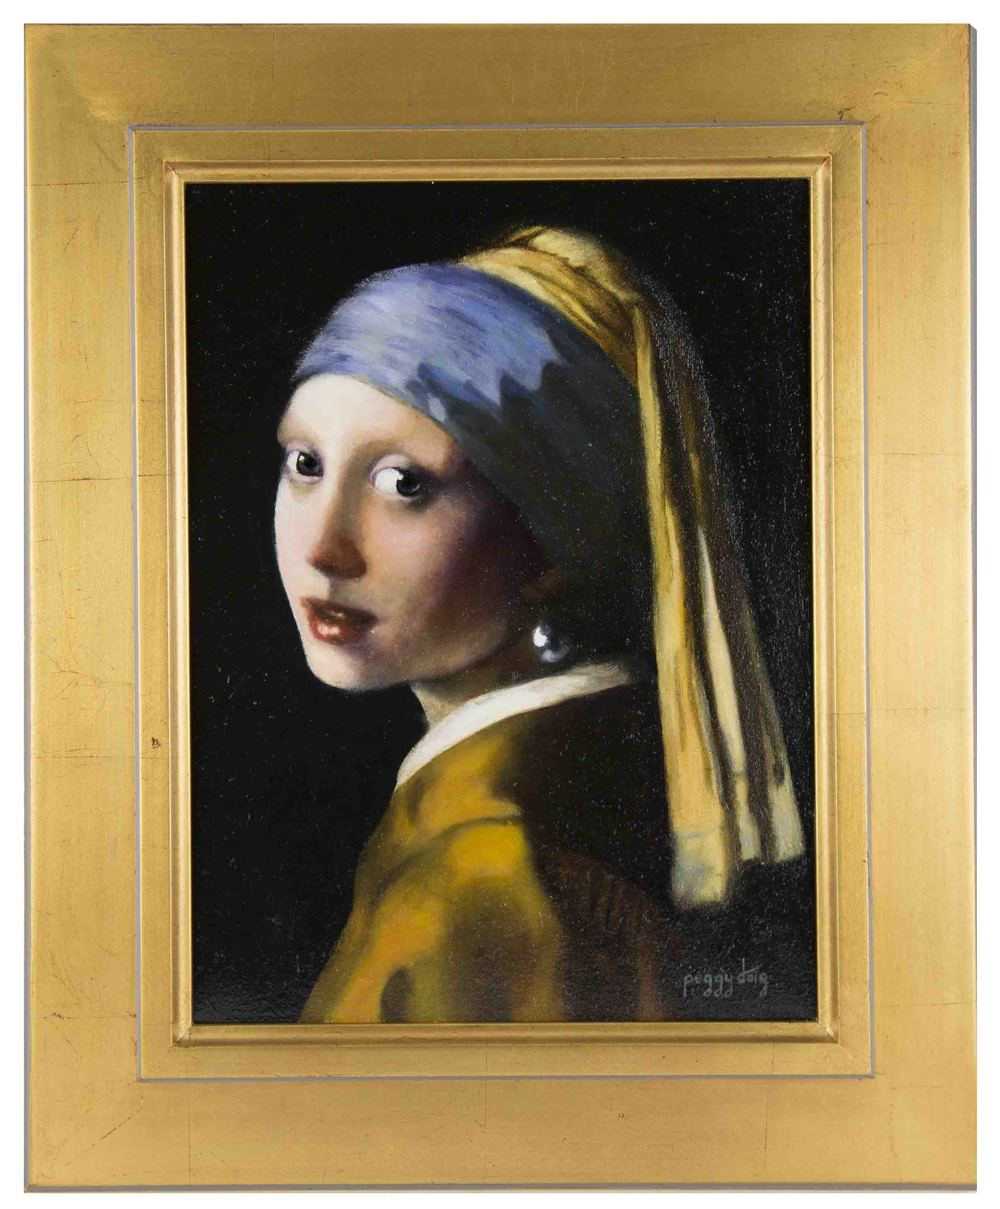 HOMAGE TO VERMEER' DISCOVERING HOW HIS PAINTS FLESH: OIL ON CANVAS NFS